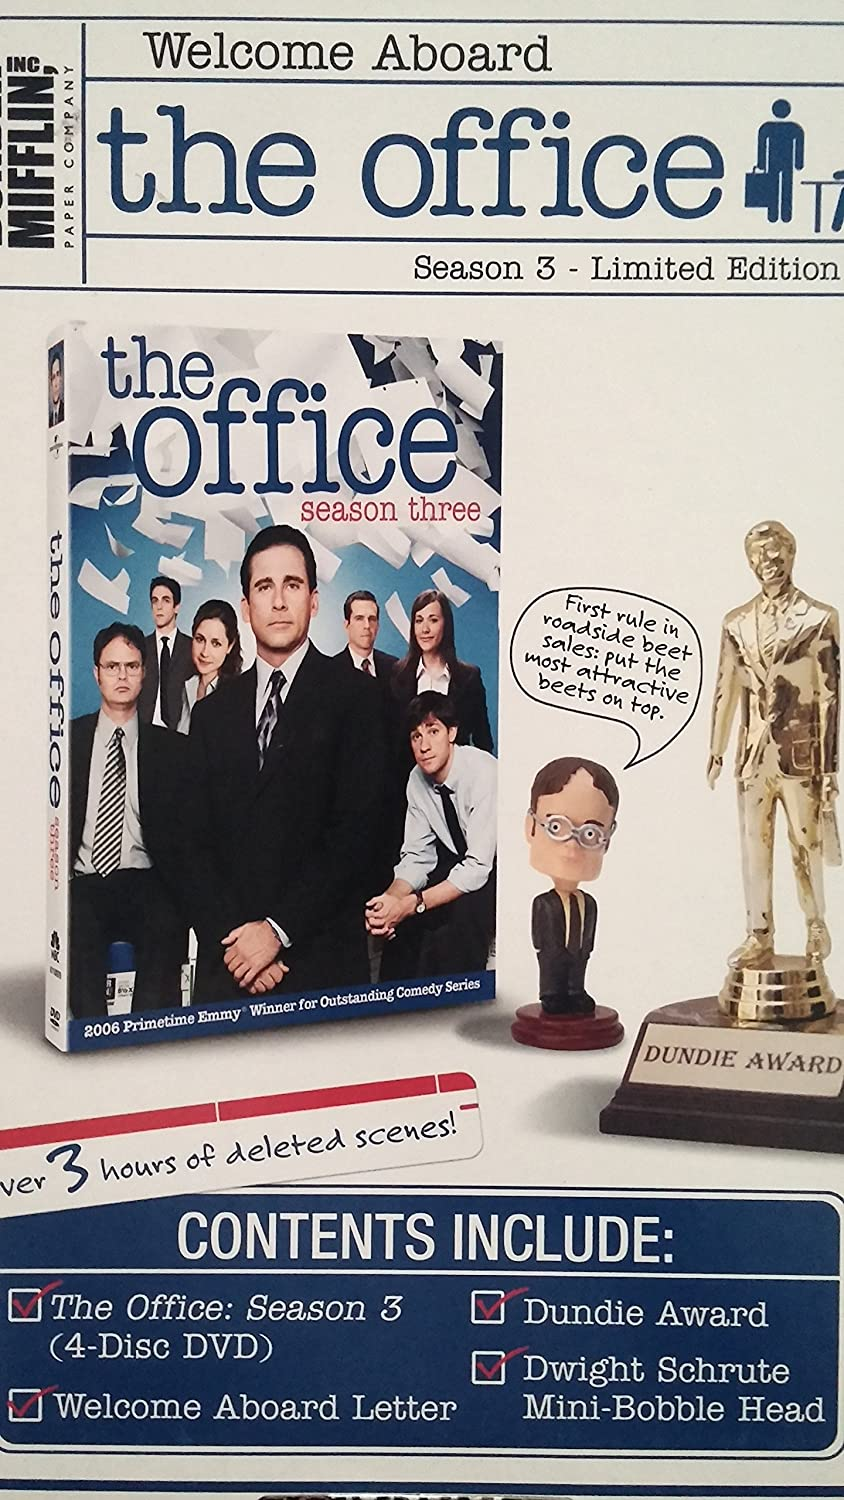 The Office Season 3 - Limited Edition W/ Dundie Award & Dwight